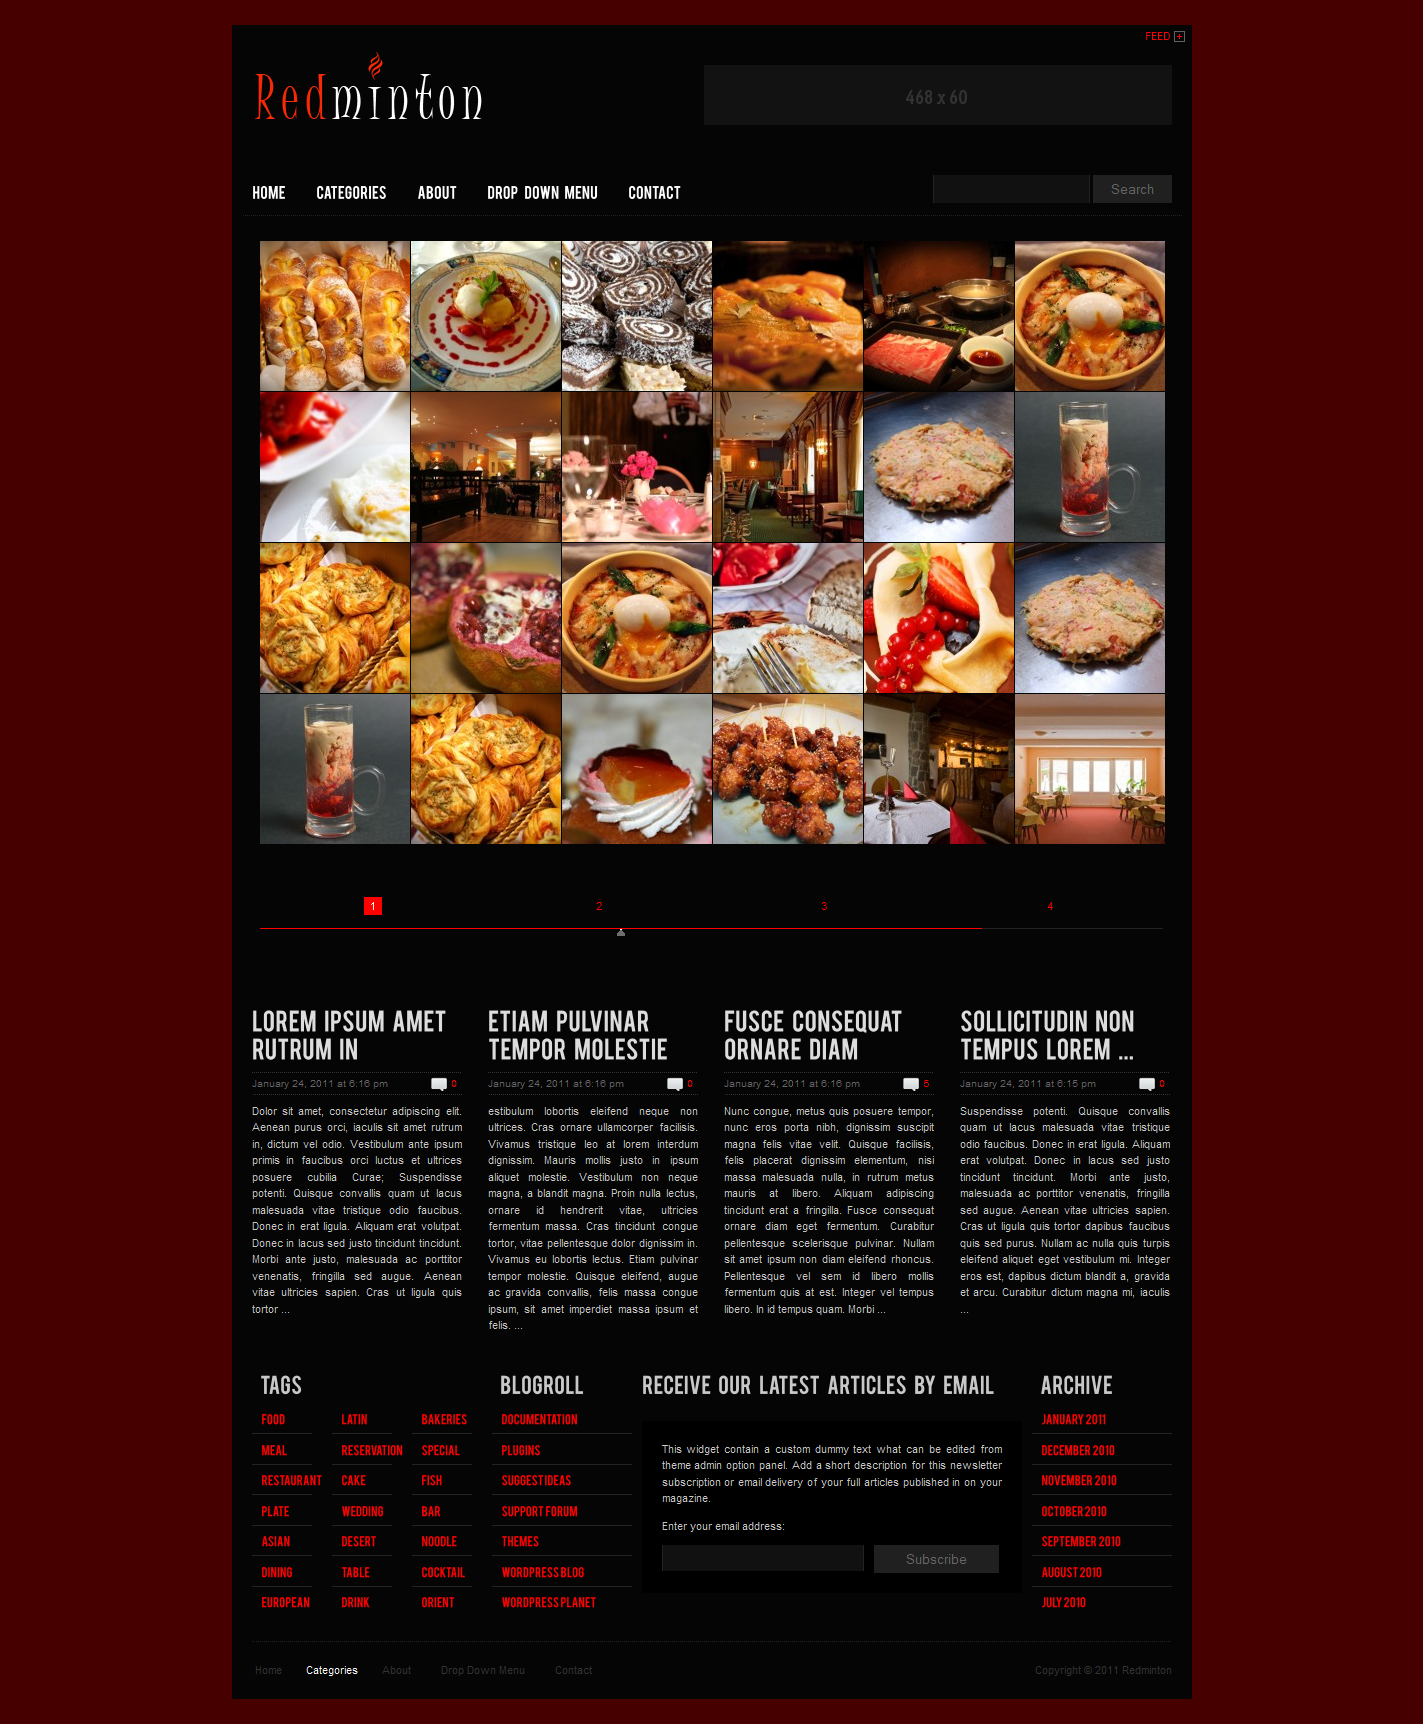 Redminton - Restaurant WordPress Theme - Redminton Layout